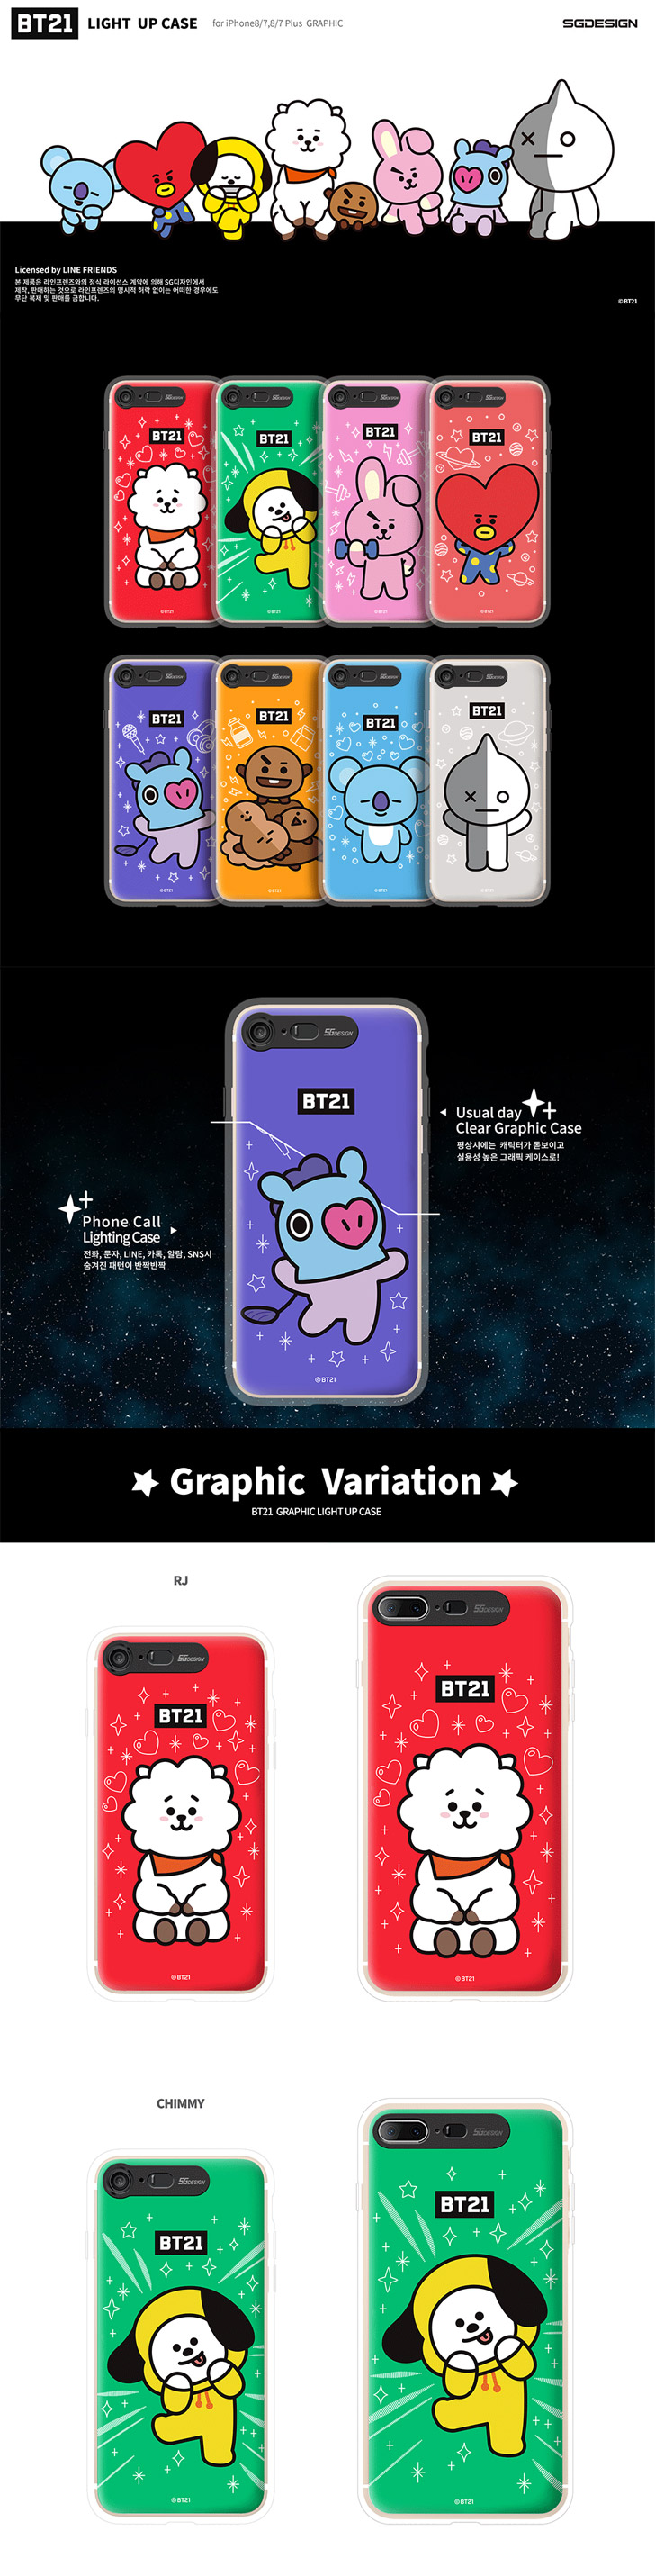 bt21 iphone 8 case